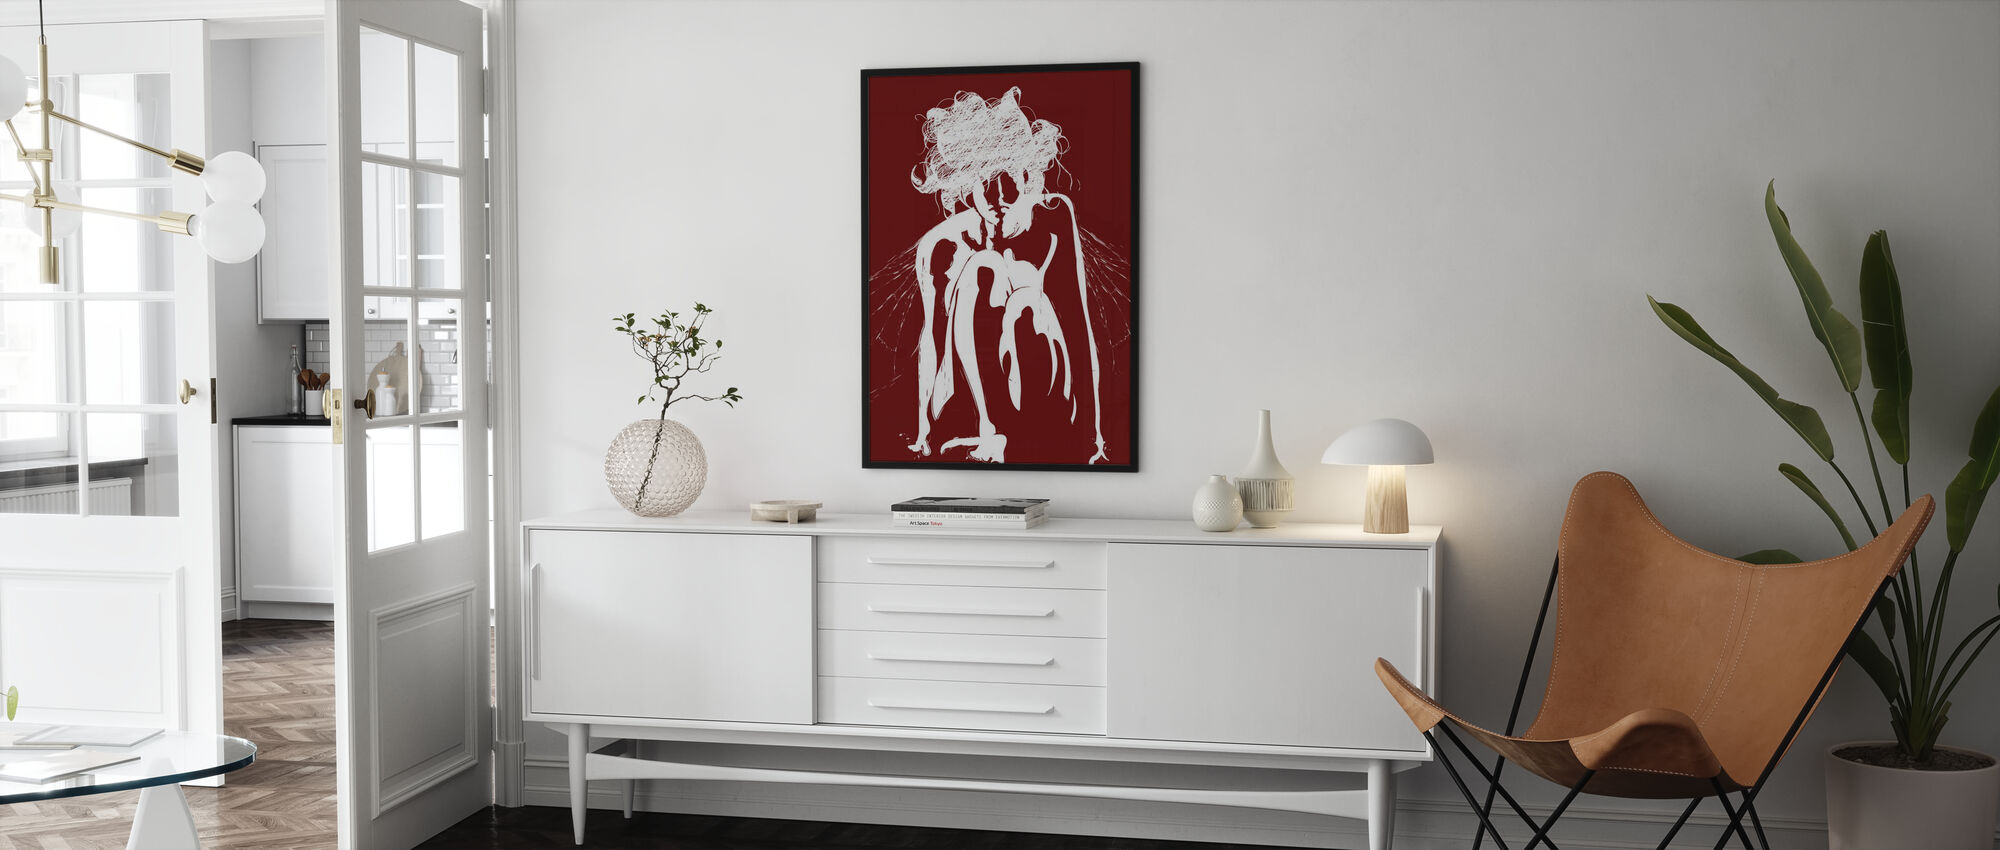 Tinker - Red - Poster - Living Room